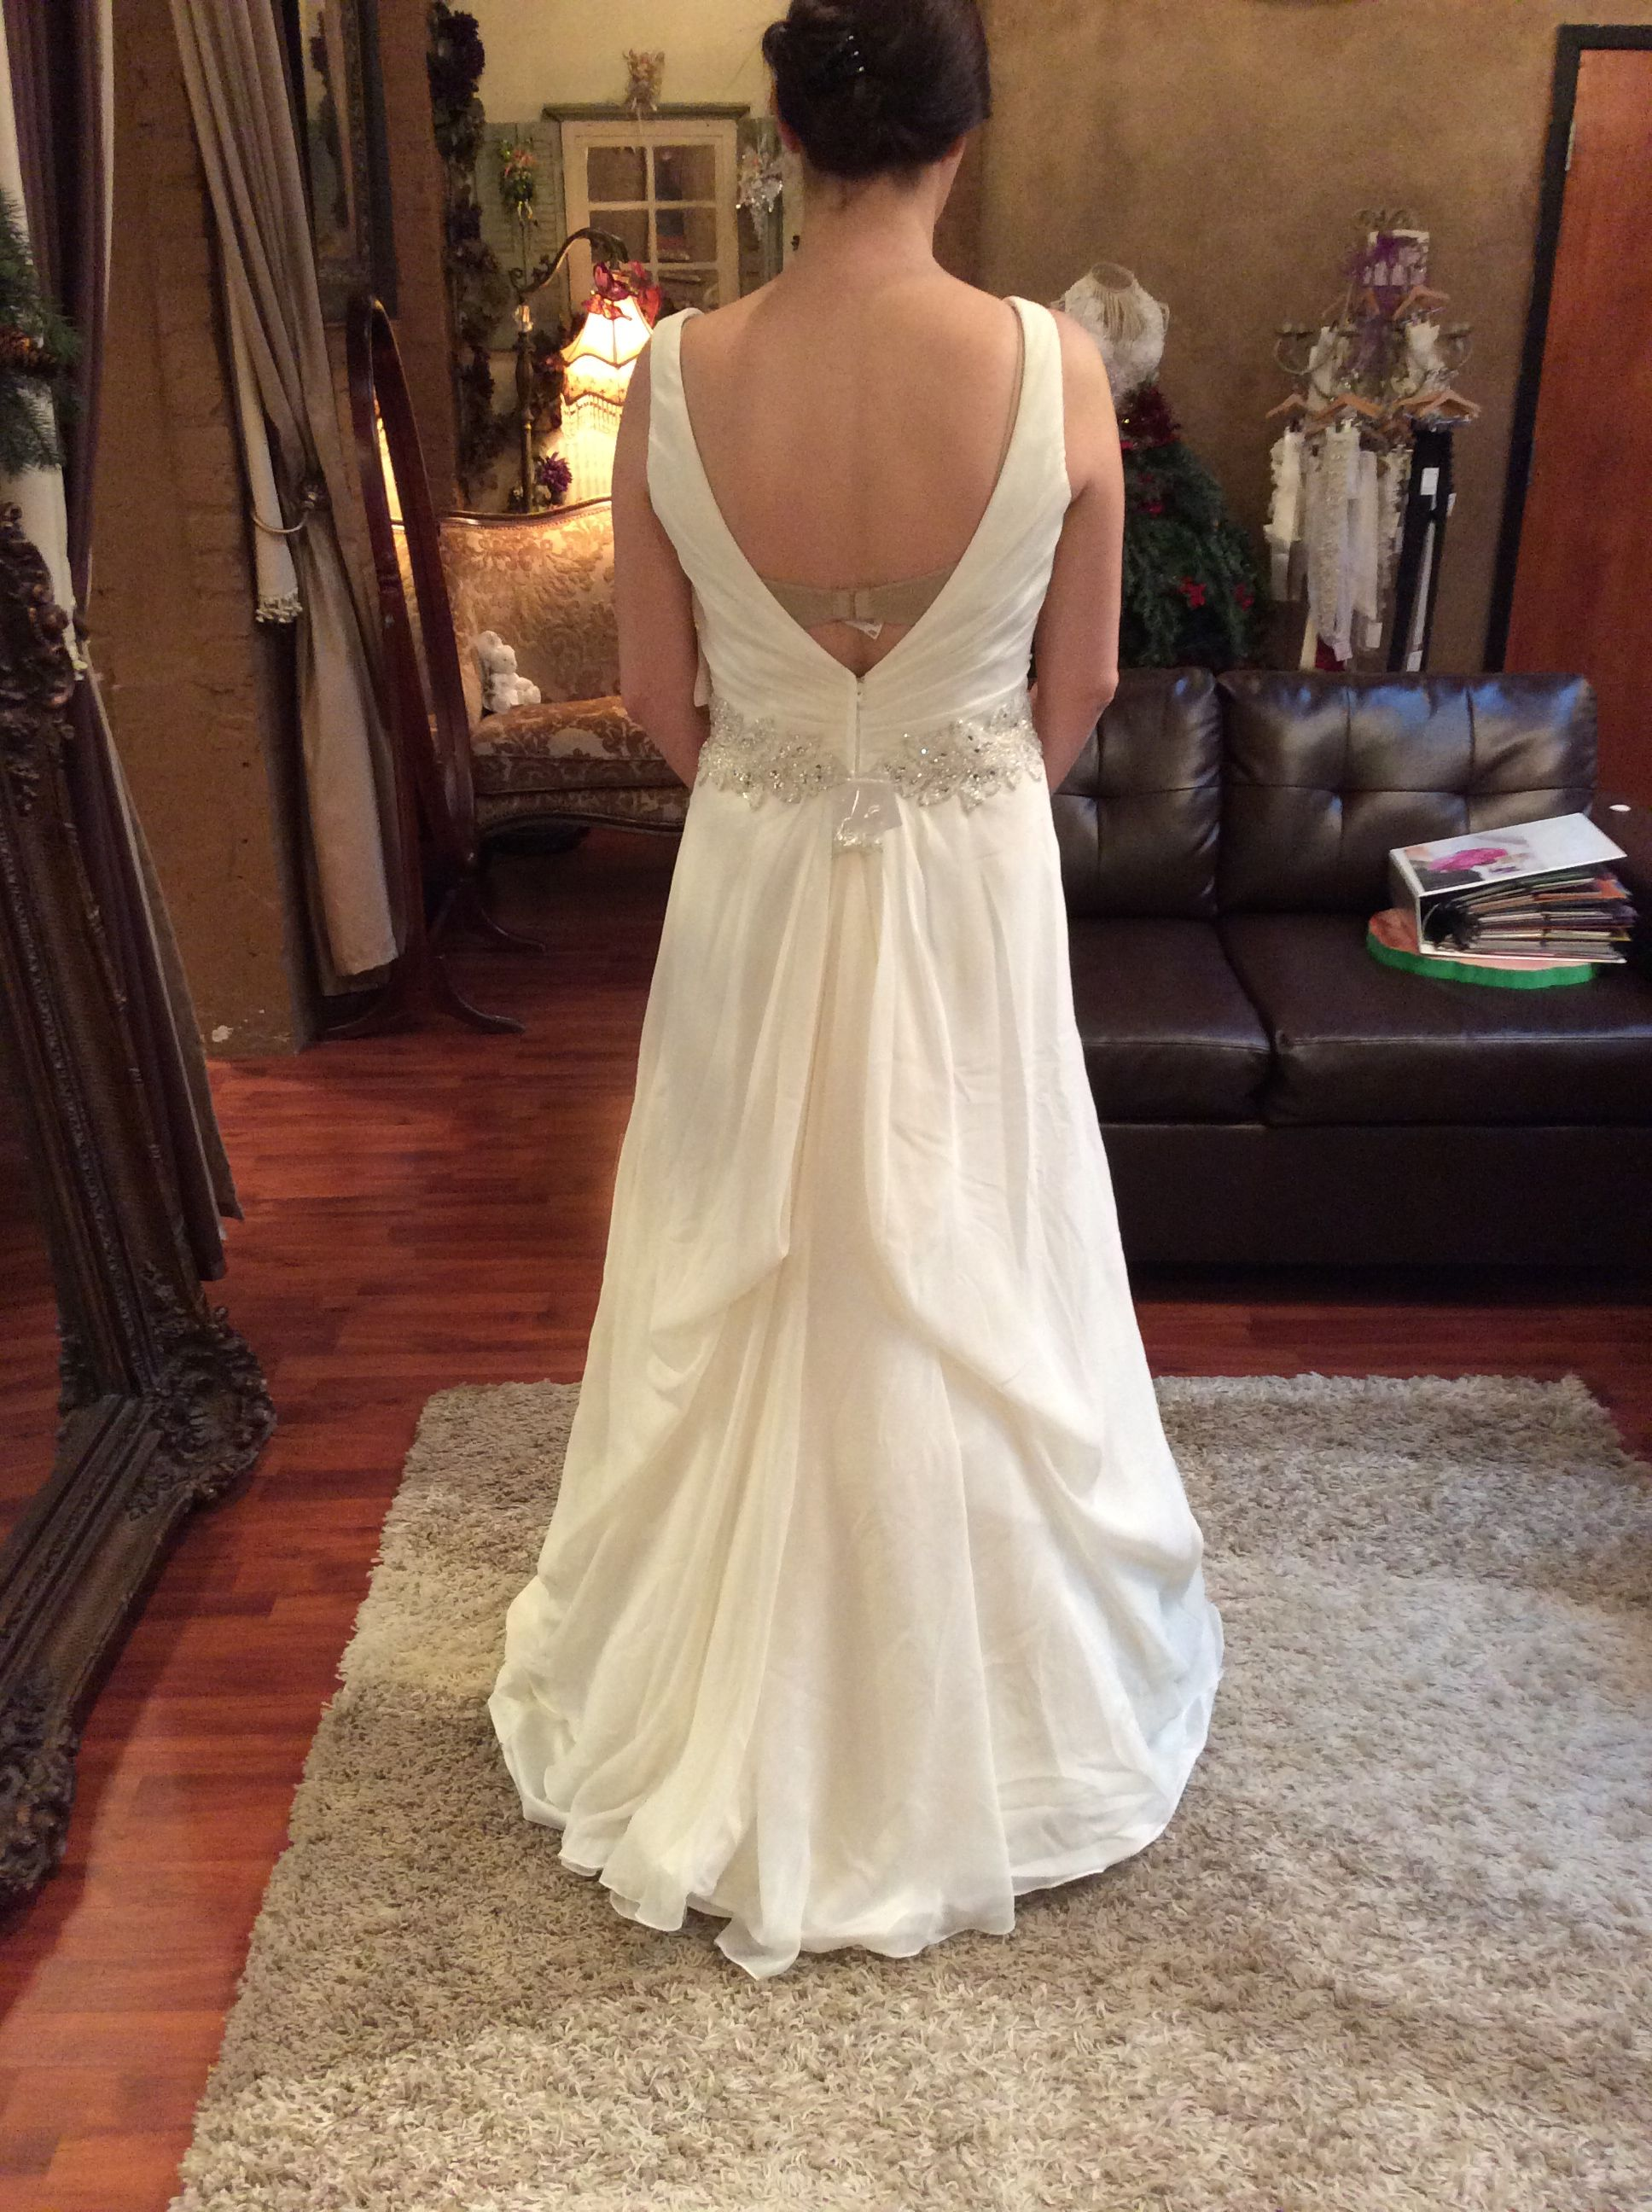 over bustle | wedding gown bustle, wedding dress bustle